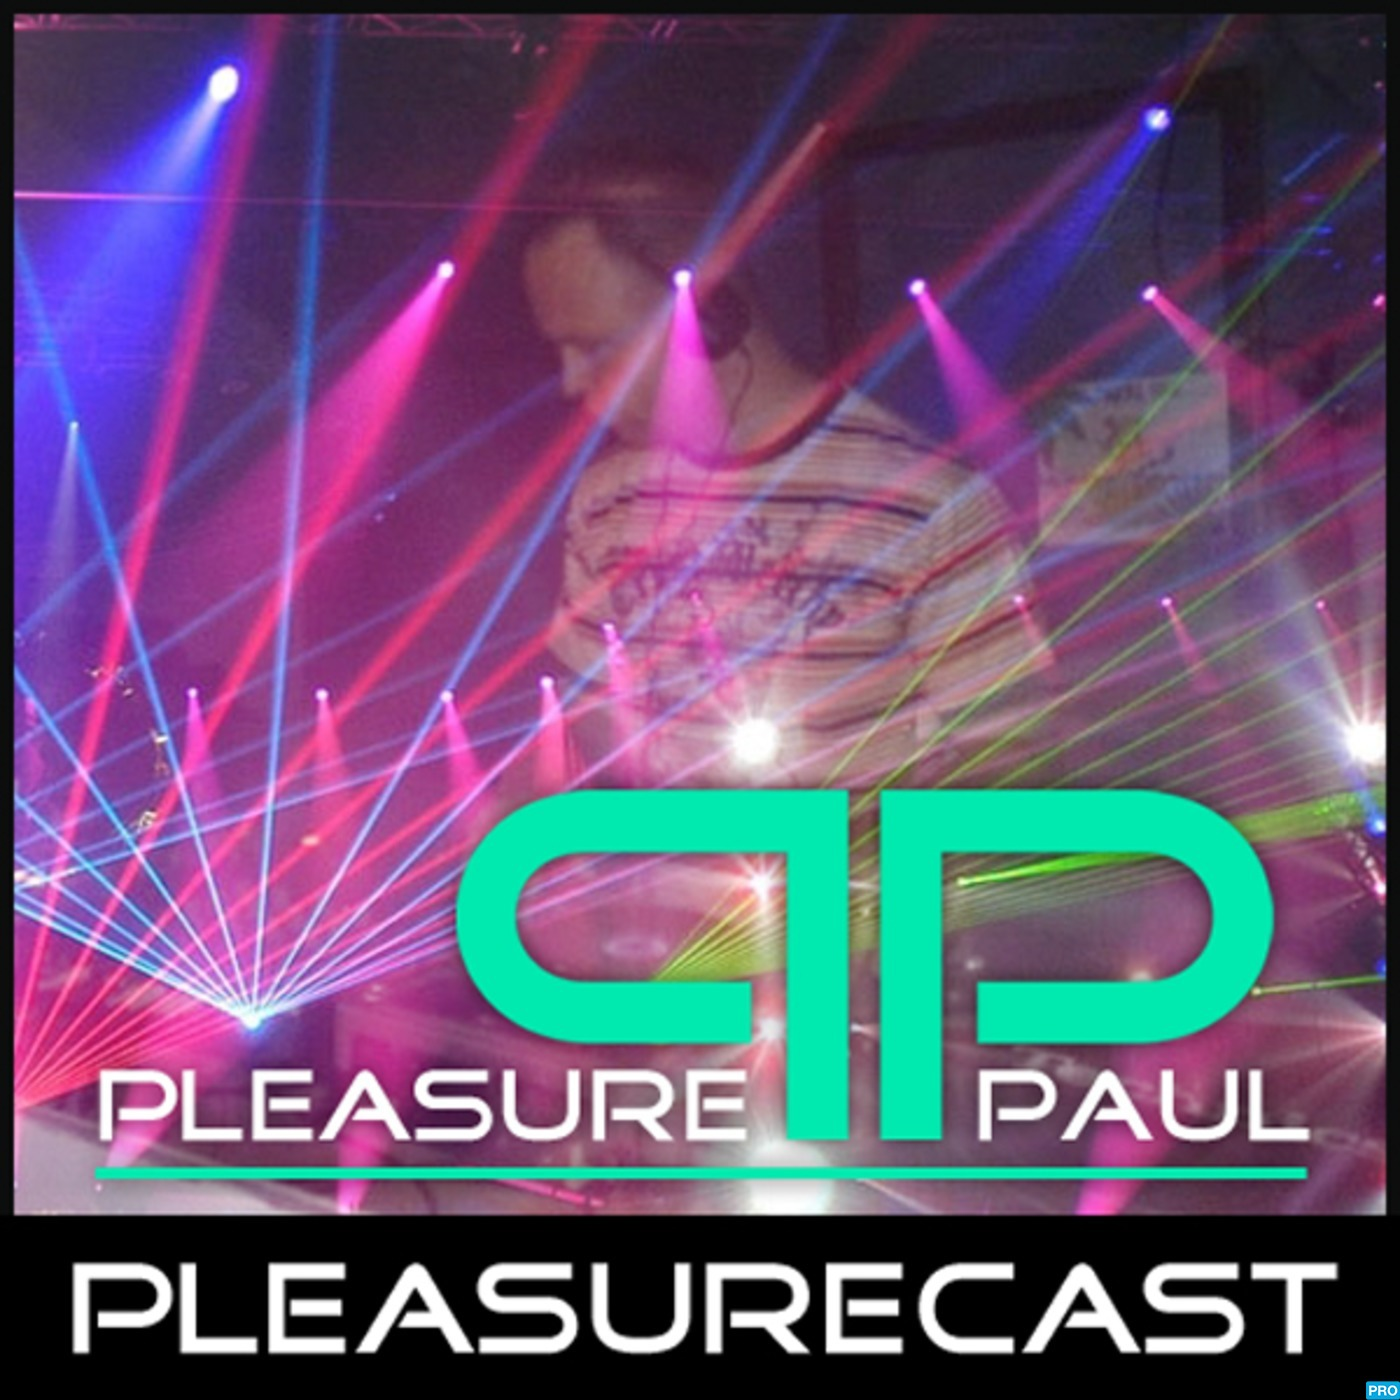 Pleasurecast - Pantry Project's Podcast